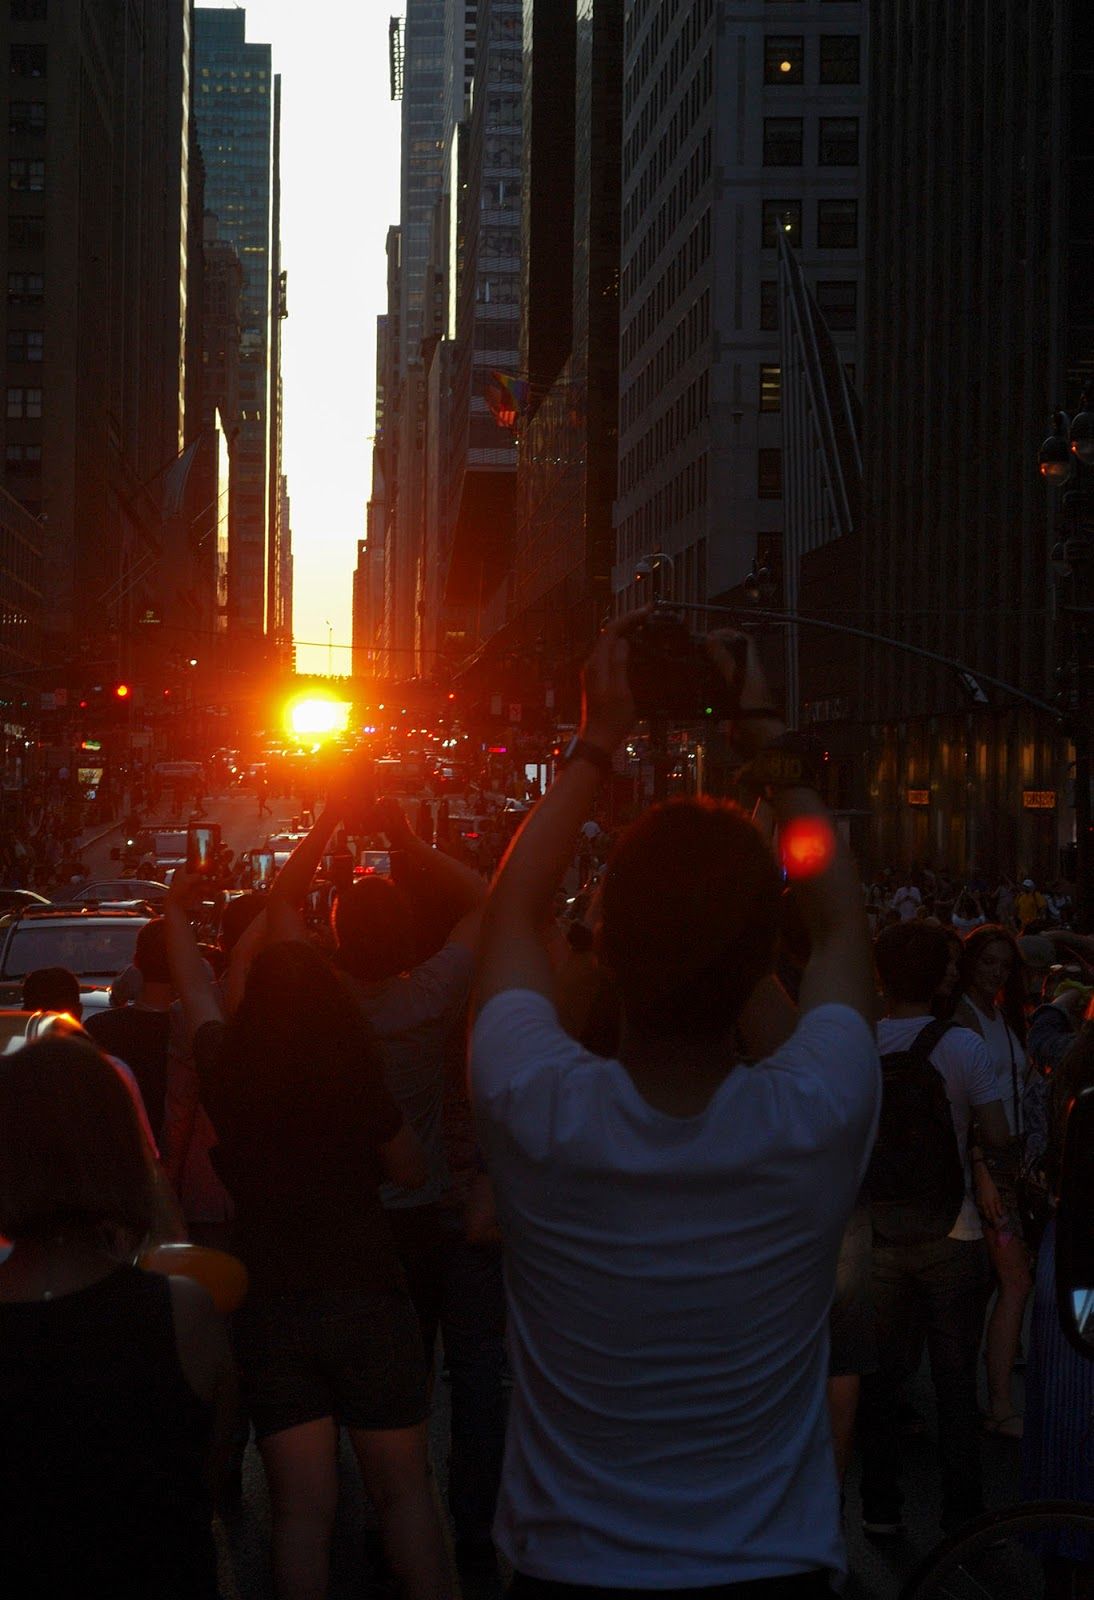 new york itinerary guide plan manhattanhenge solstice manhattan